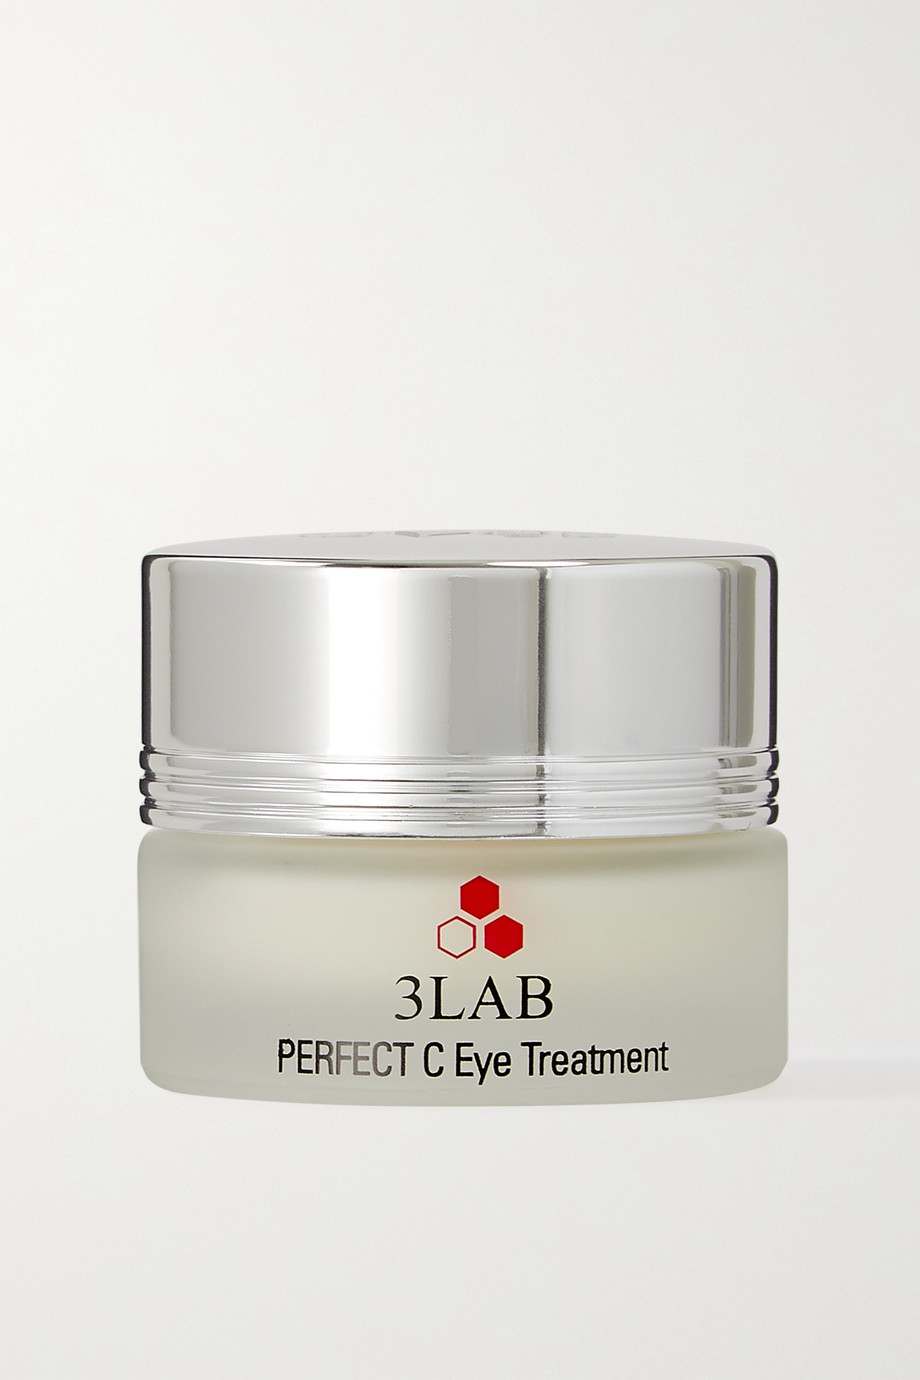 3LAB Perfect C Eye Treatment, 15ml